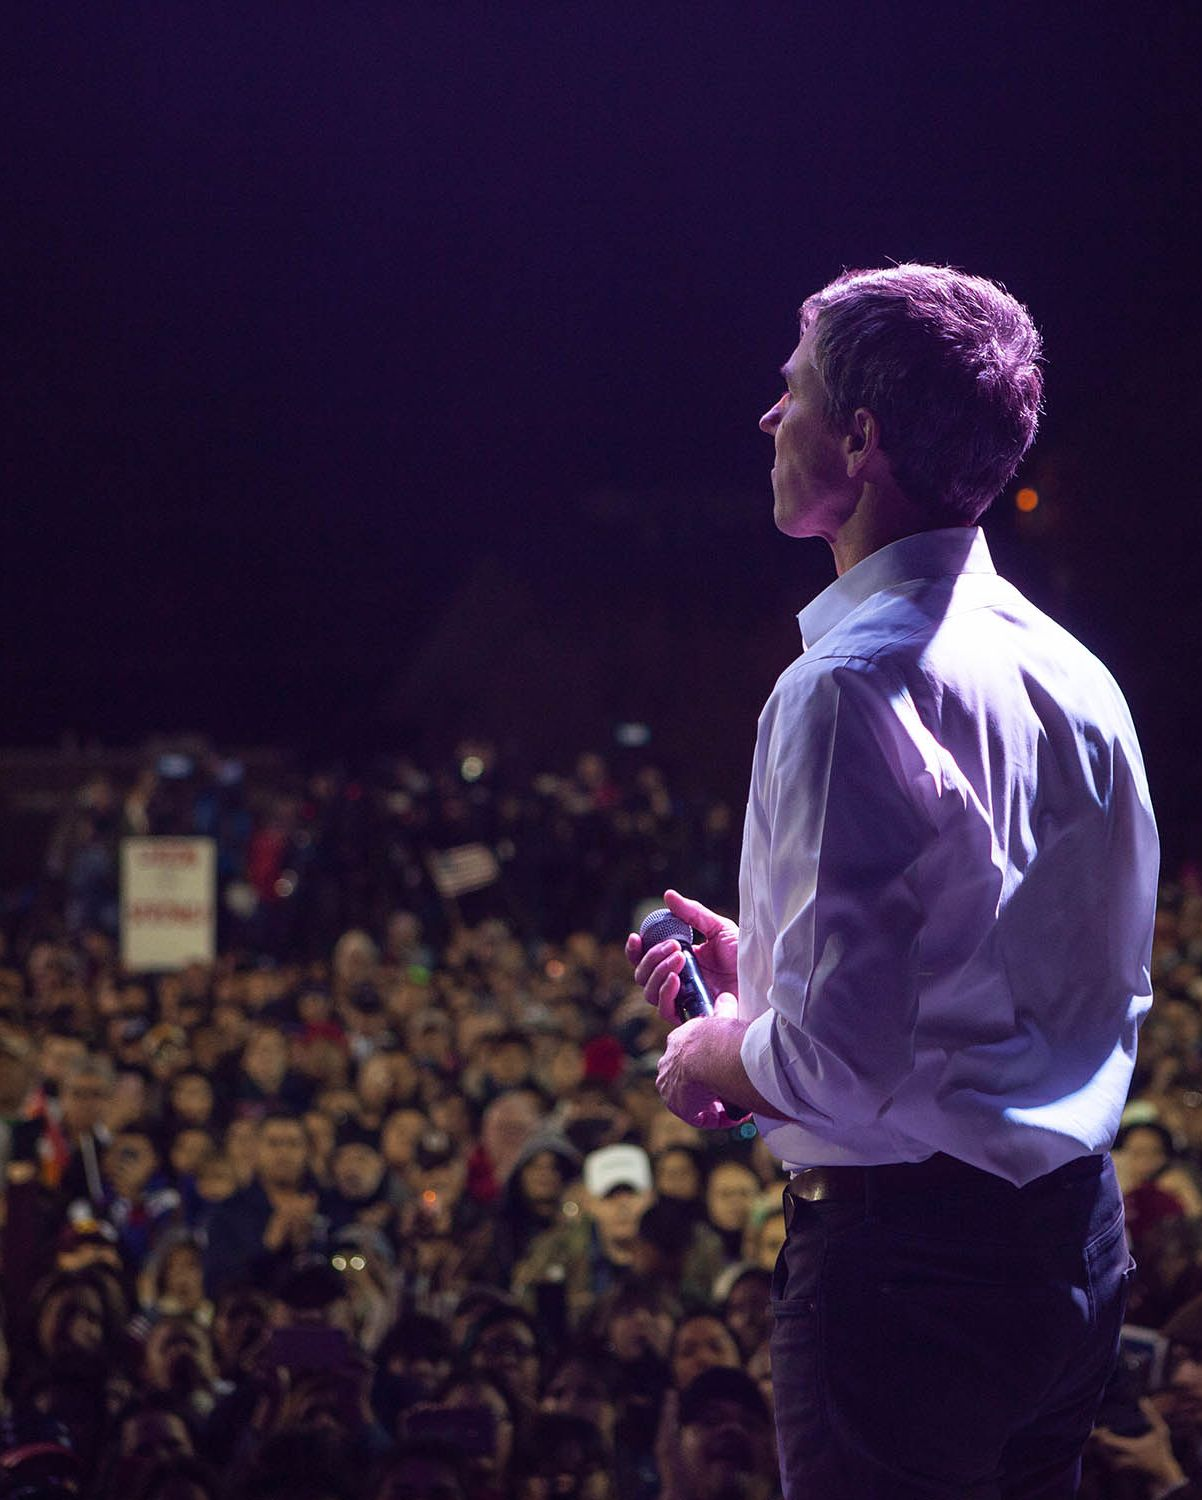 Beto O'Rourke speaks to thousands of people gathered to protest a U.S./Mexico border wall being pushed by President Donald Trump February 11, 2019 in El Paso, Texas.